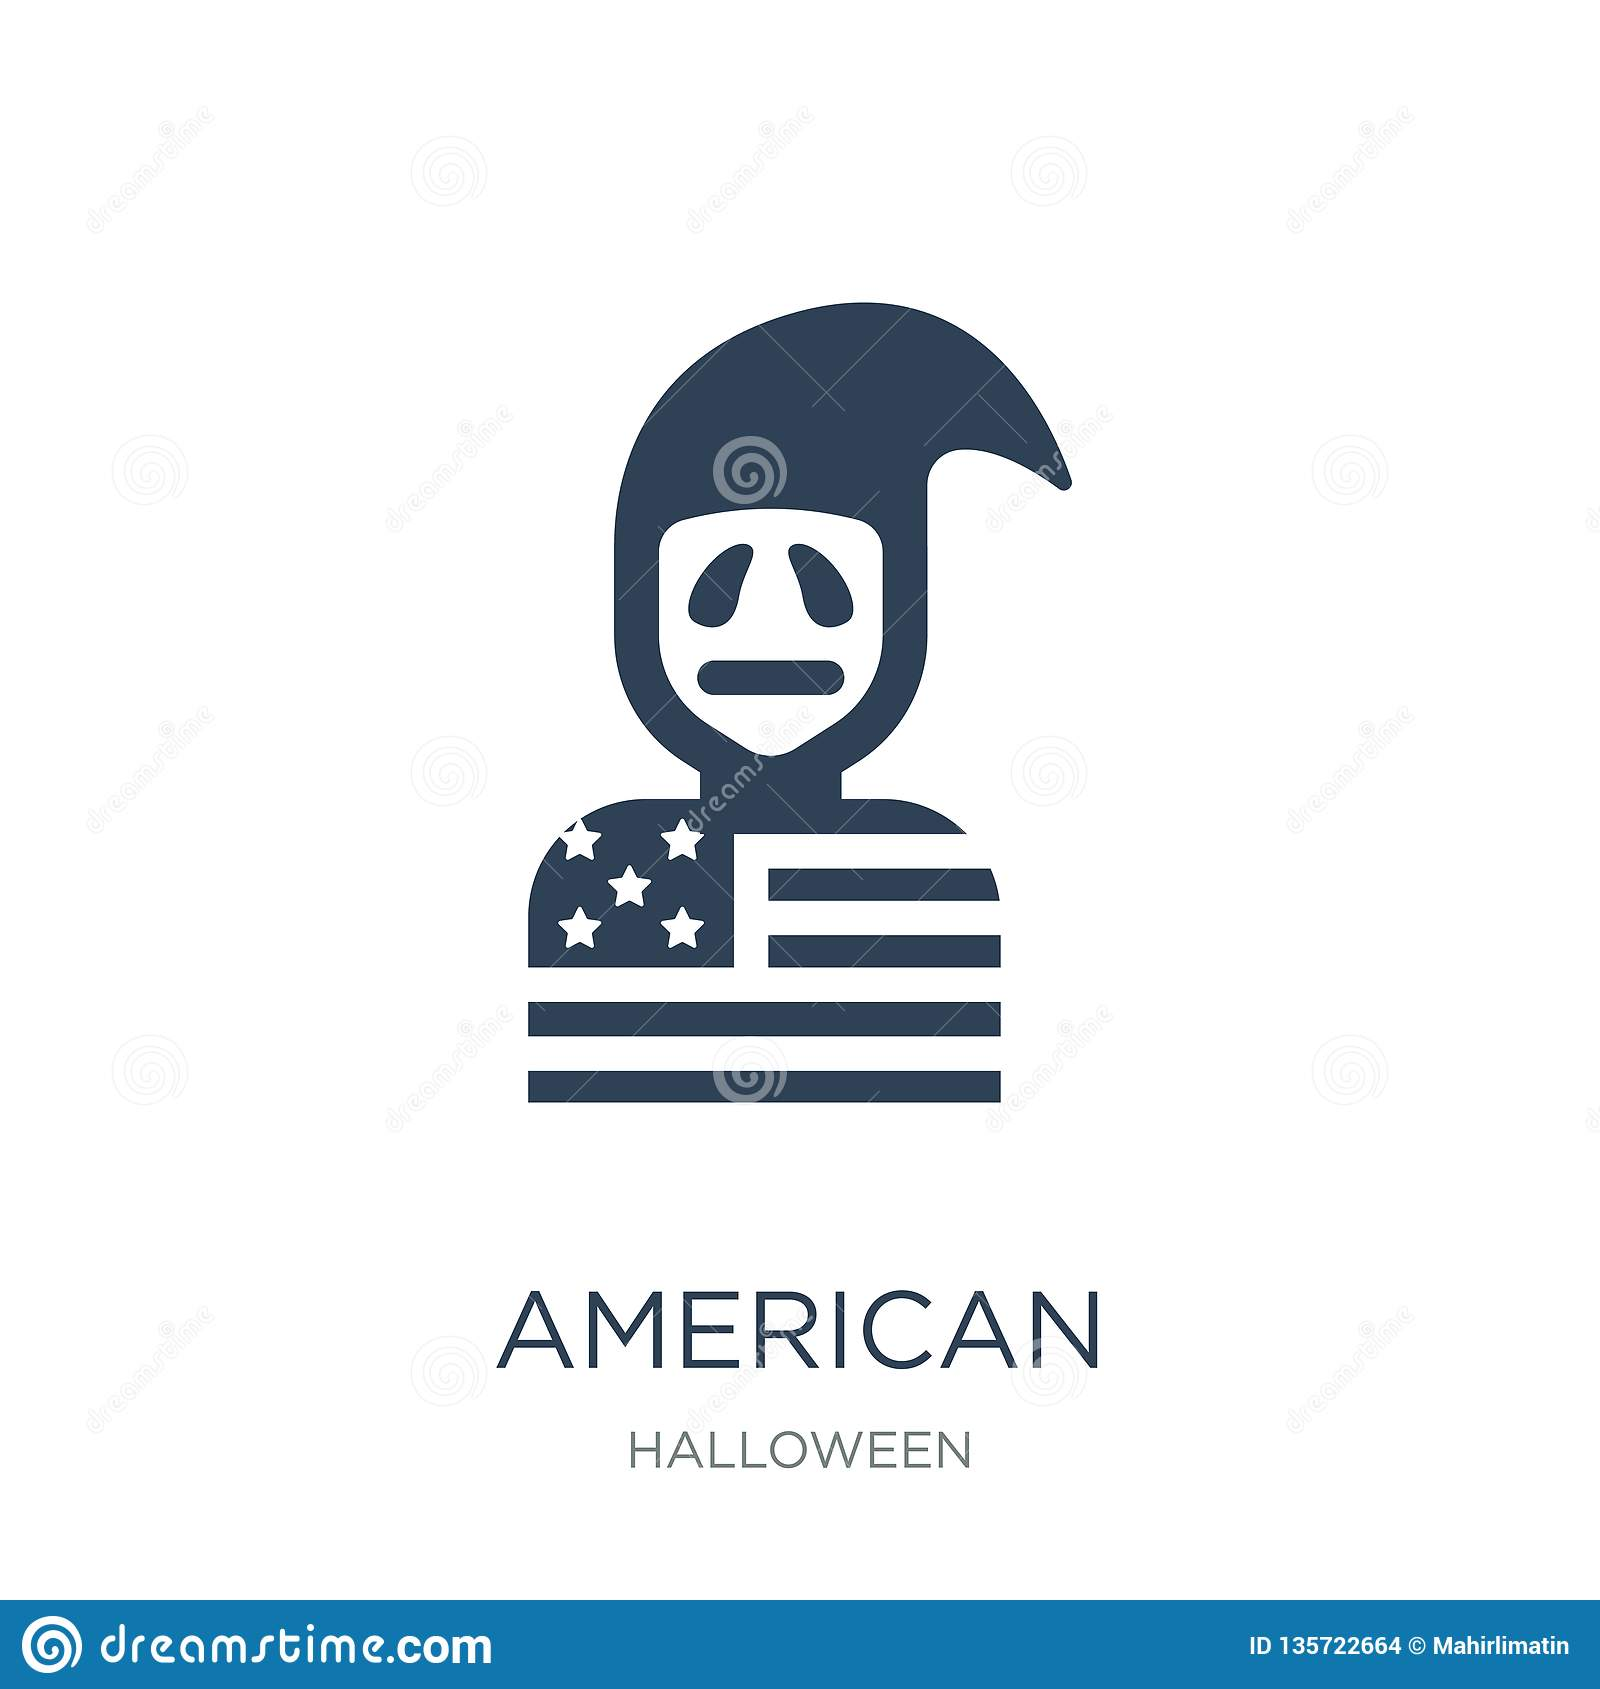 american icon in trendy design style. american icon isolated on white background. american vector icon simple and modern flat